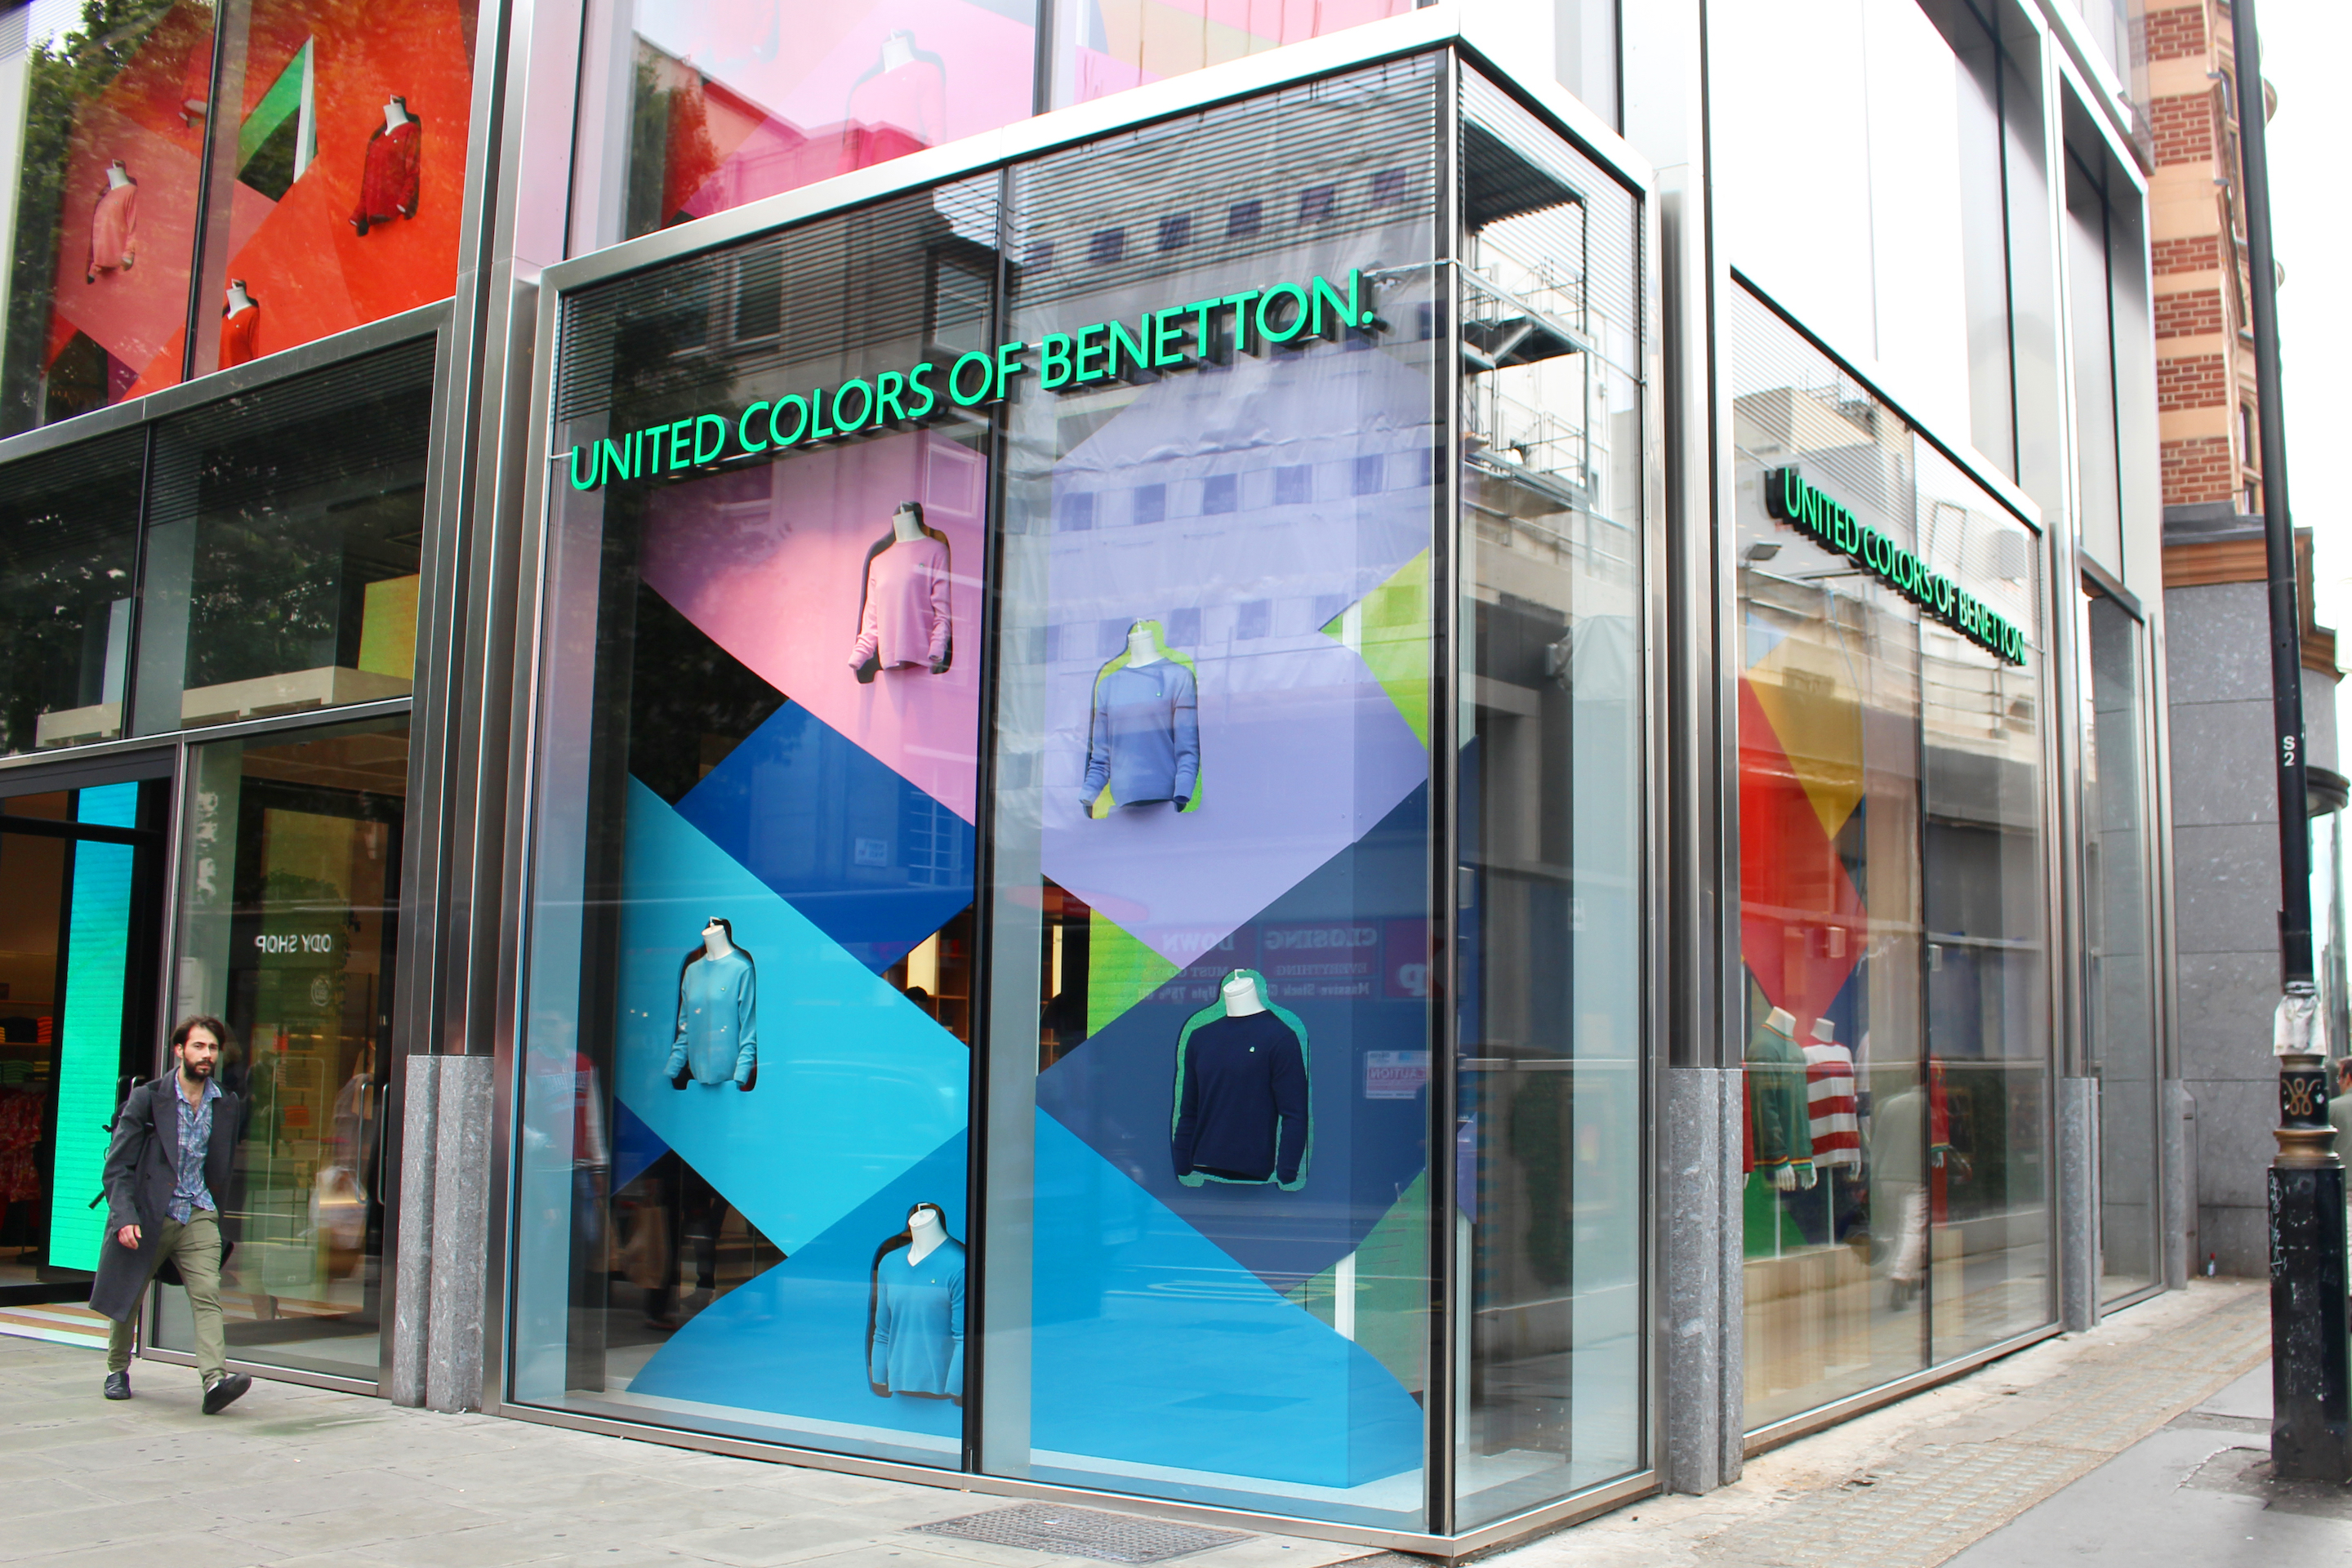 A Benetton on London's Oxford Street, which opened last year.